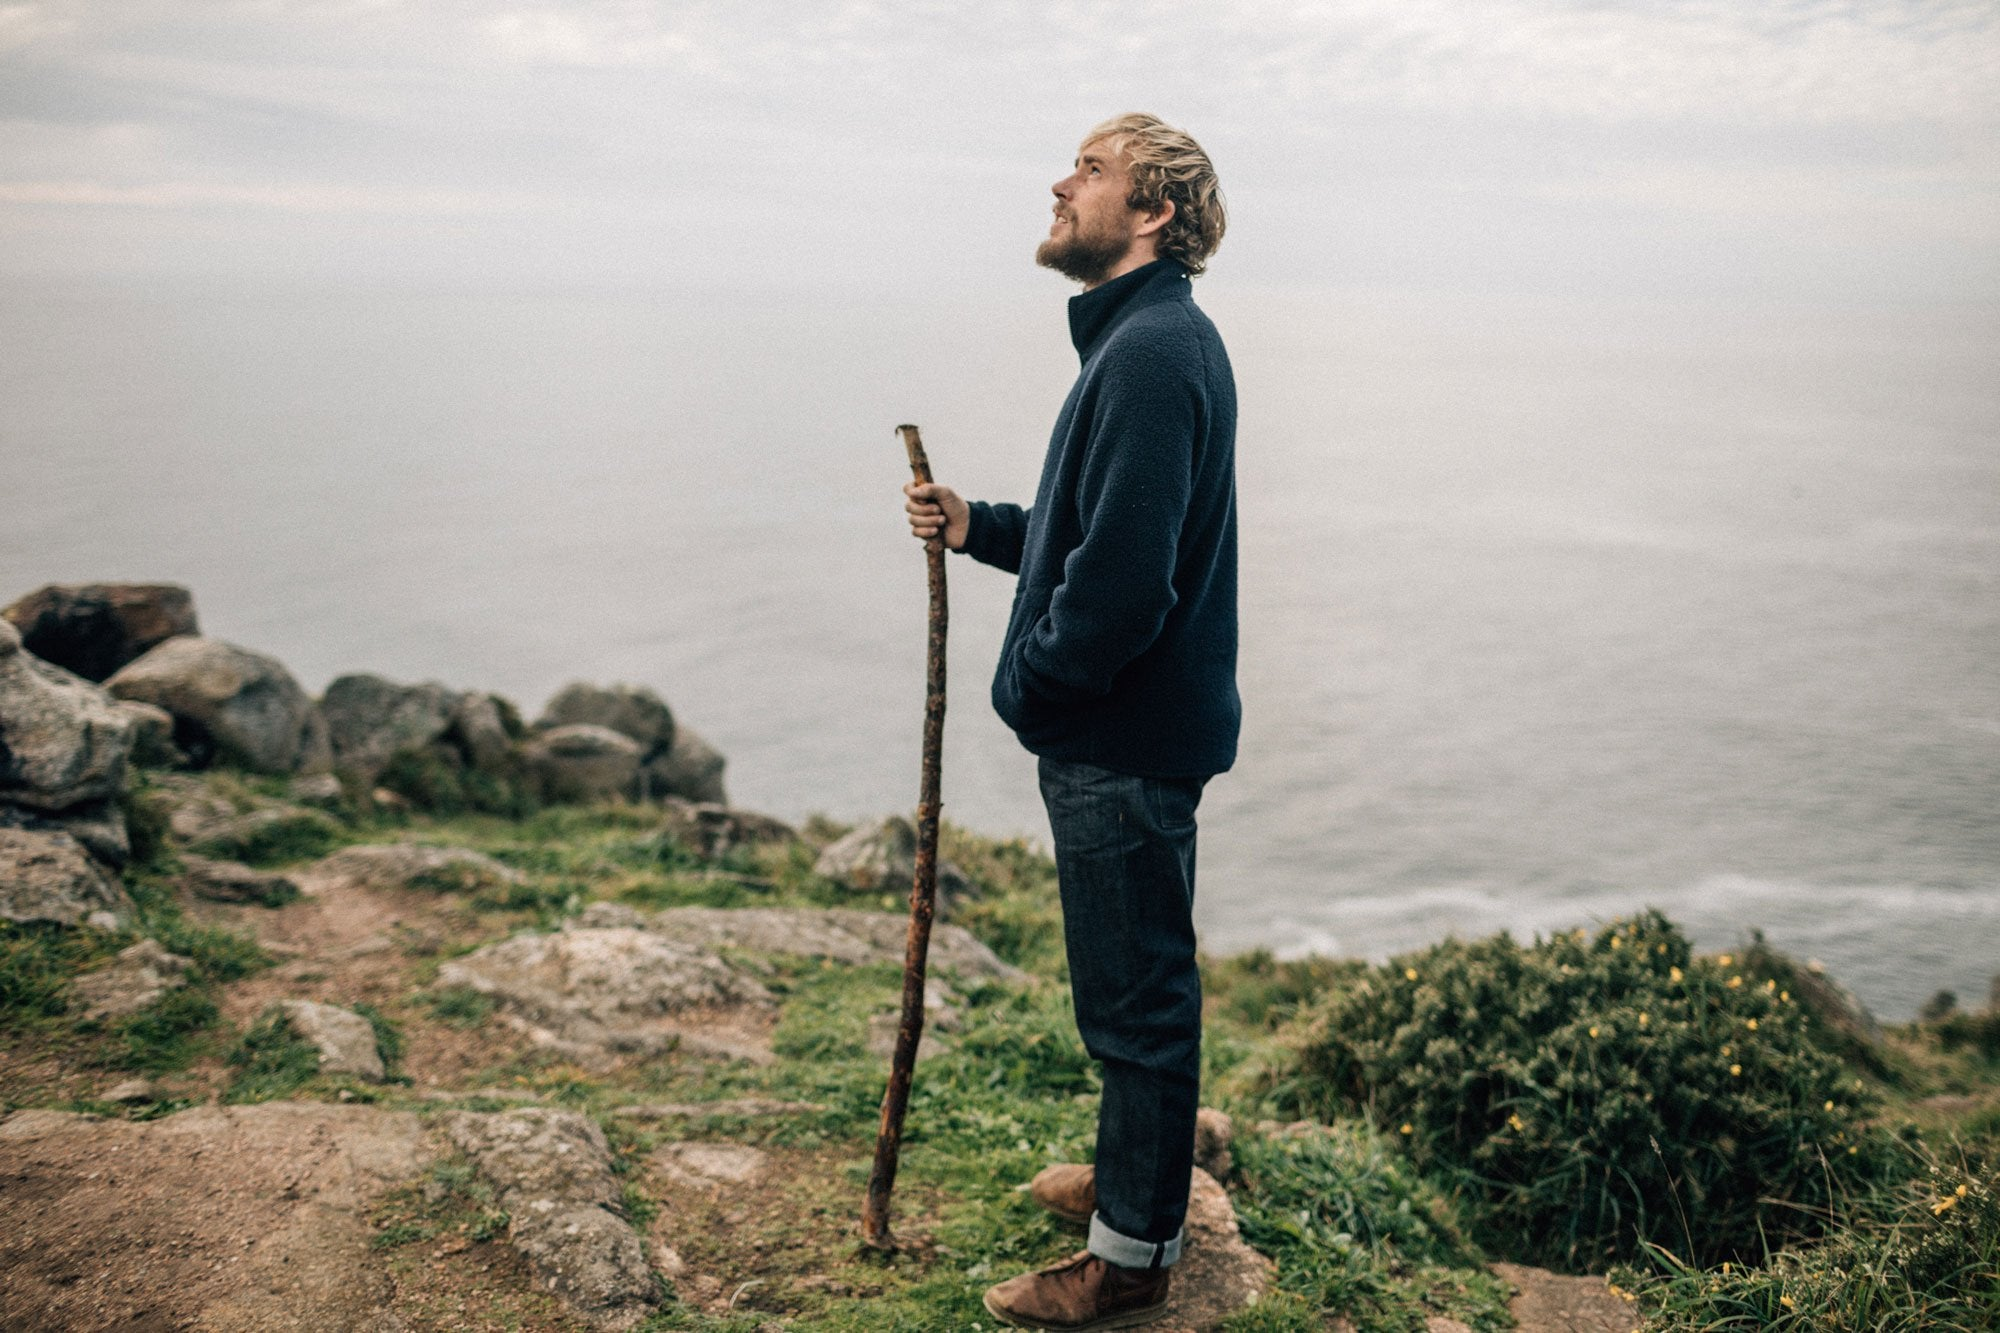 Mike-Lay-with-his-favourite-walking-stick-at-Cape-Finisterre